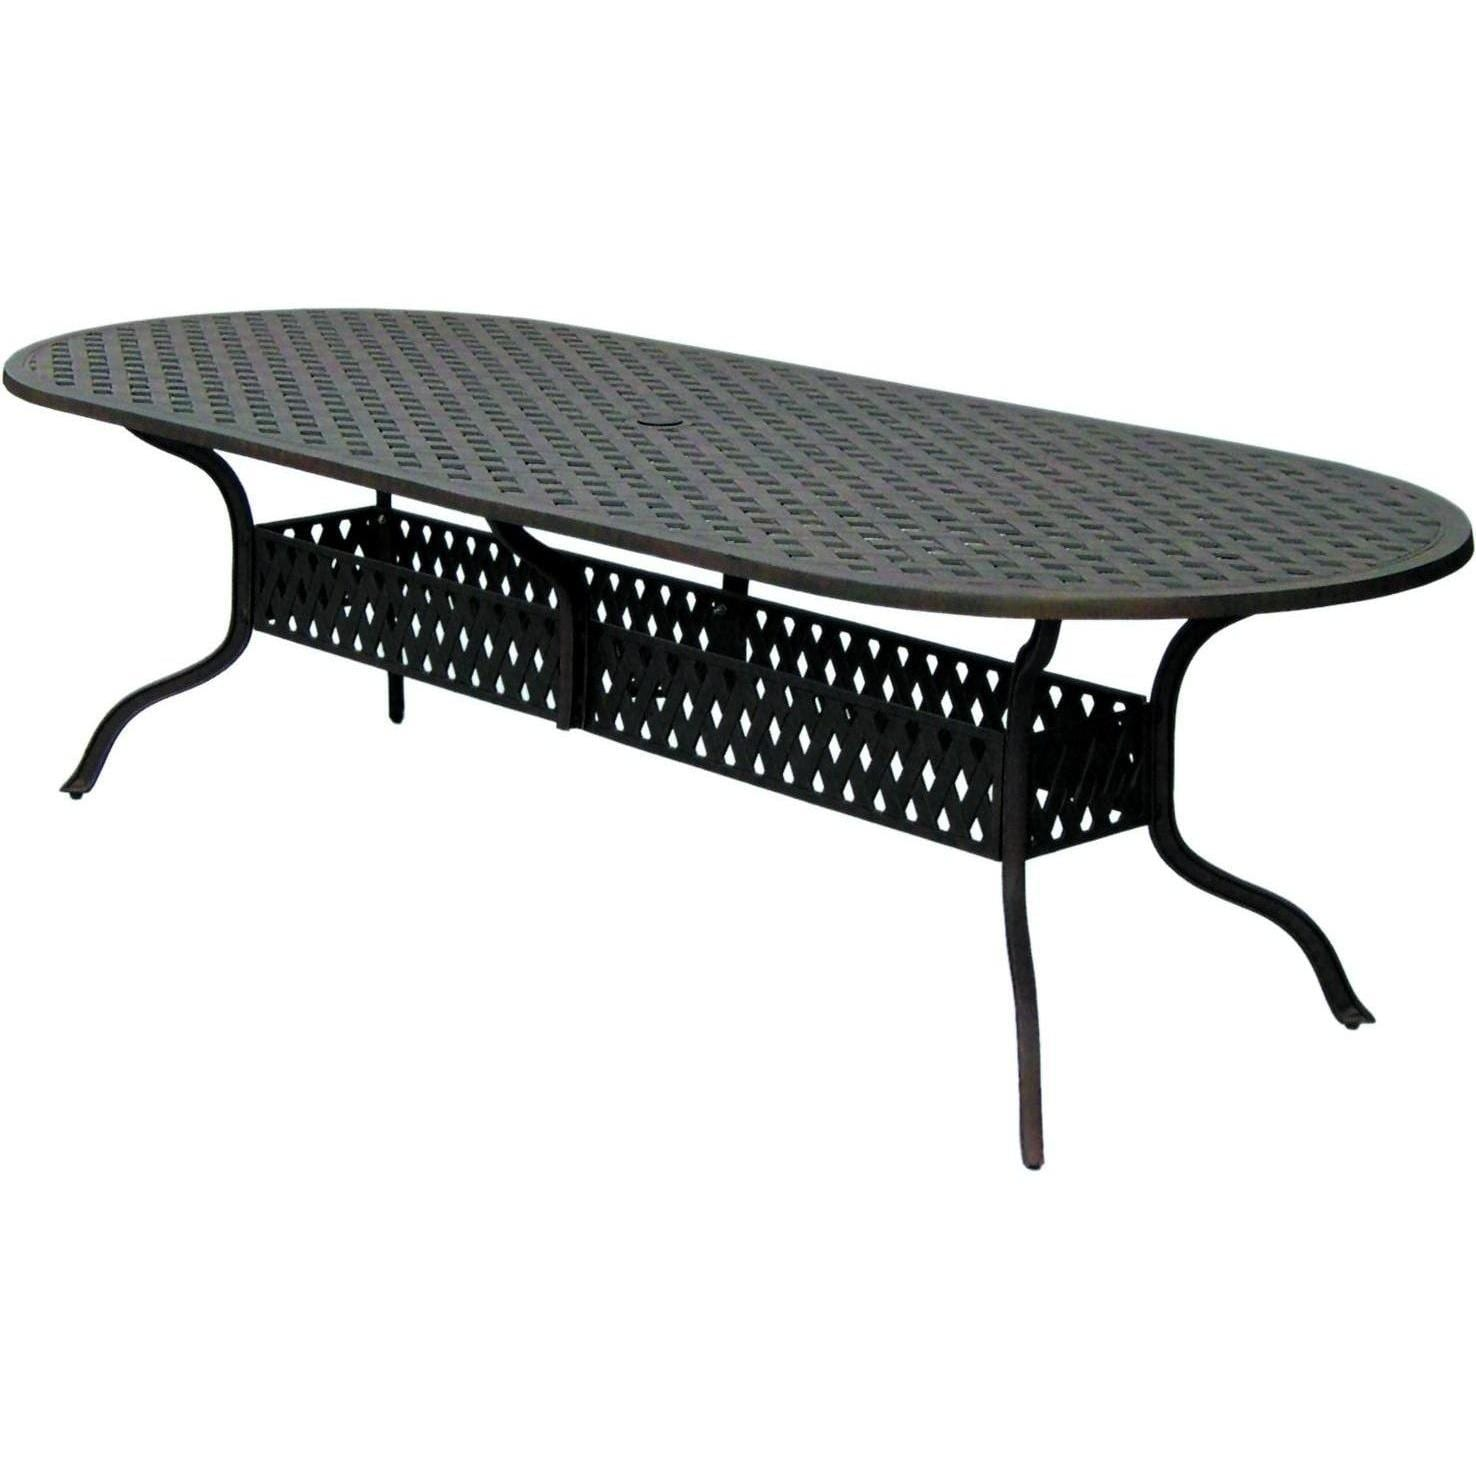 Wondrous Darlee Santa Monica 9 Piece Cast Aluminum Patio Dining Set With Oval Table Home Interior And Landscaping Palasignezvosmurscom